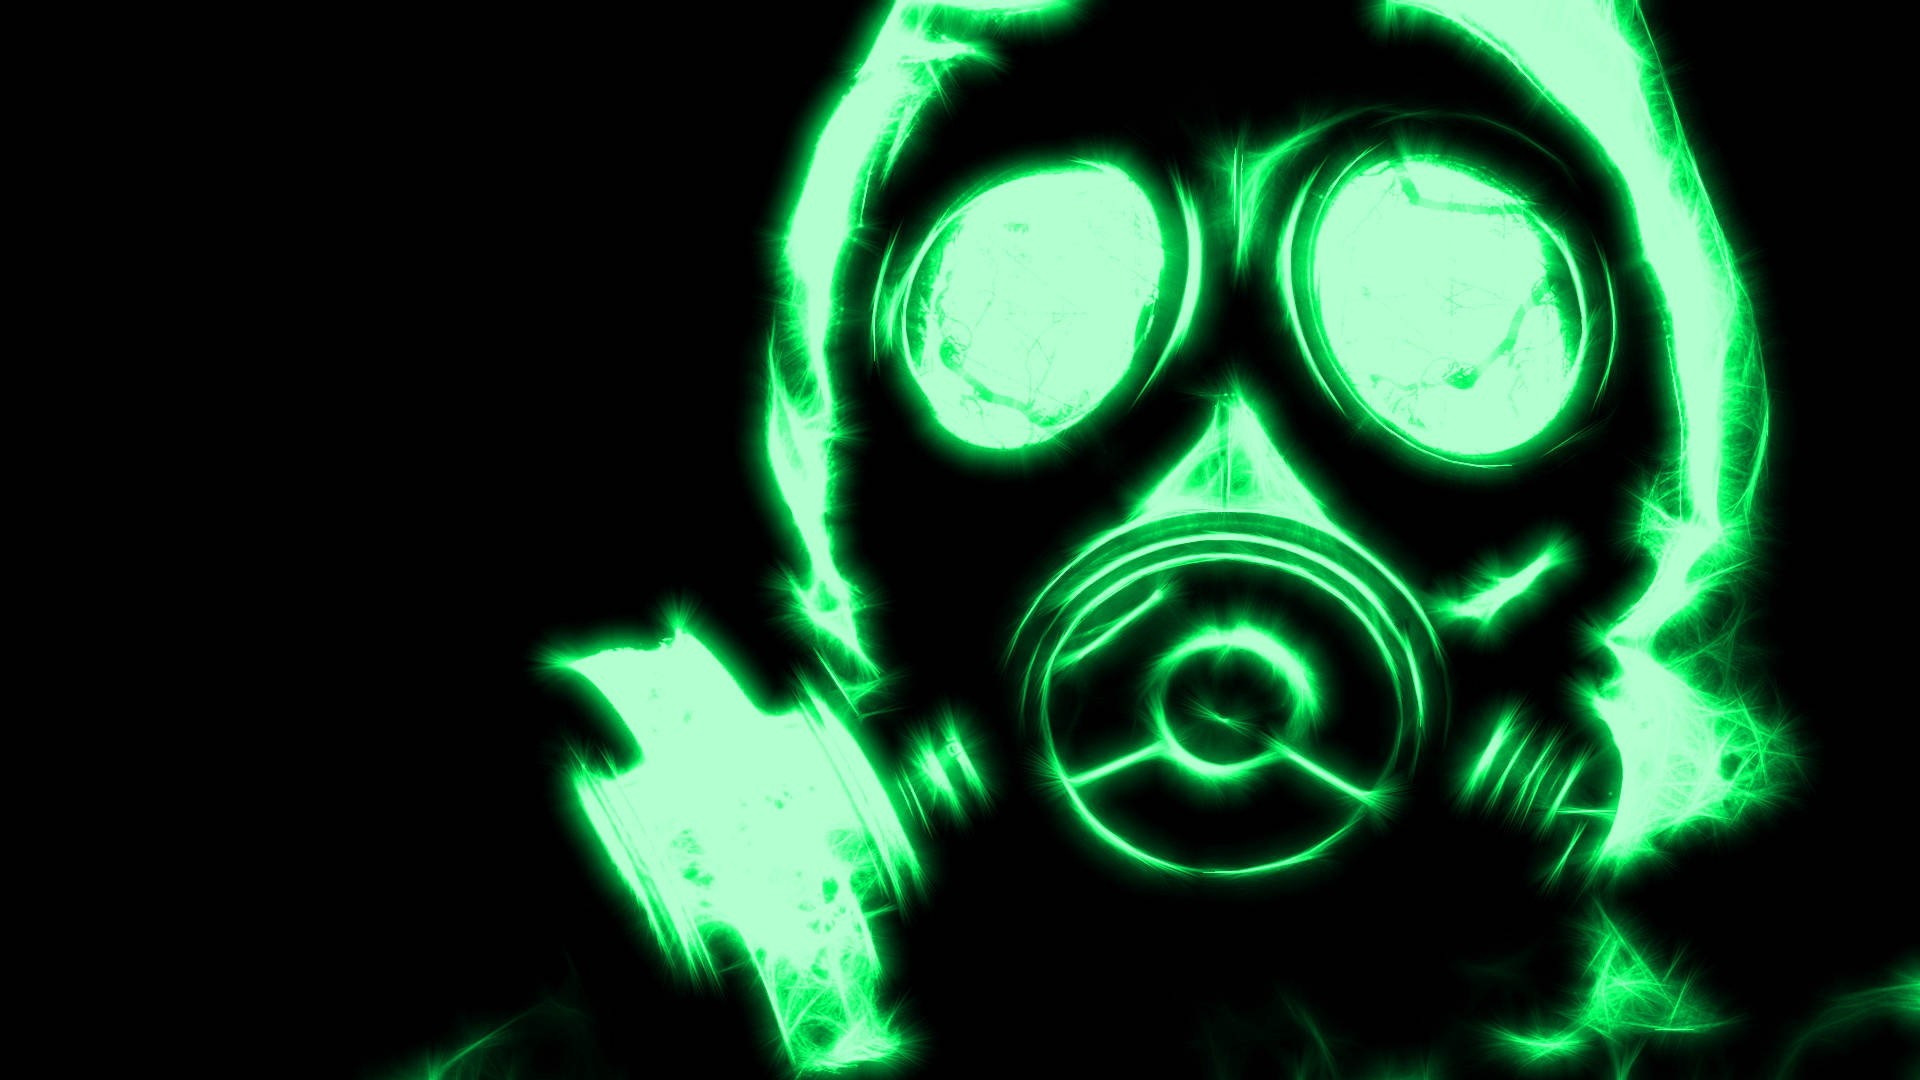 Res: 1920x1080, Great Wallpaper Green Gas Mask - gas-mask-wallpaper-inspirational-cool-